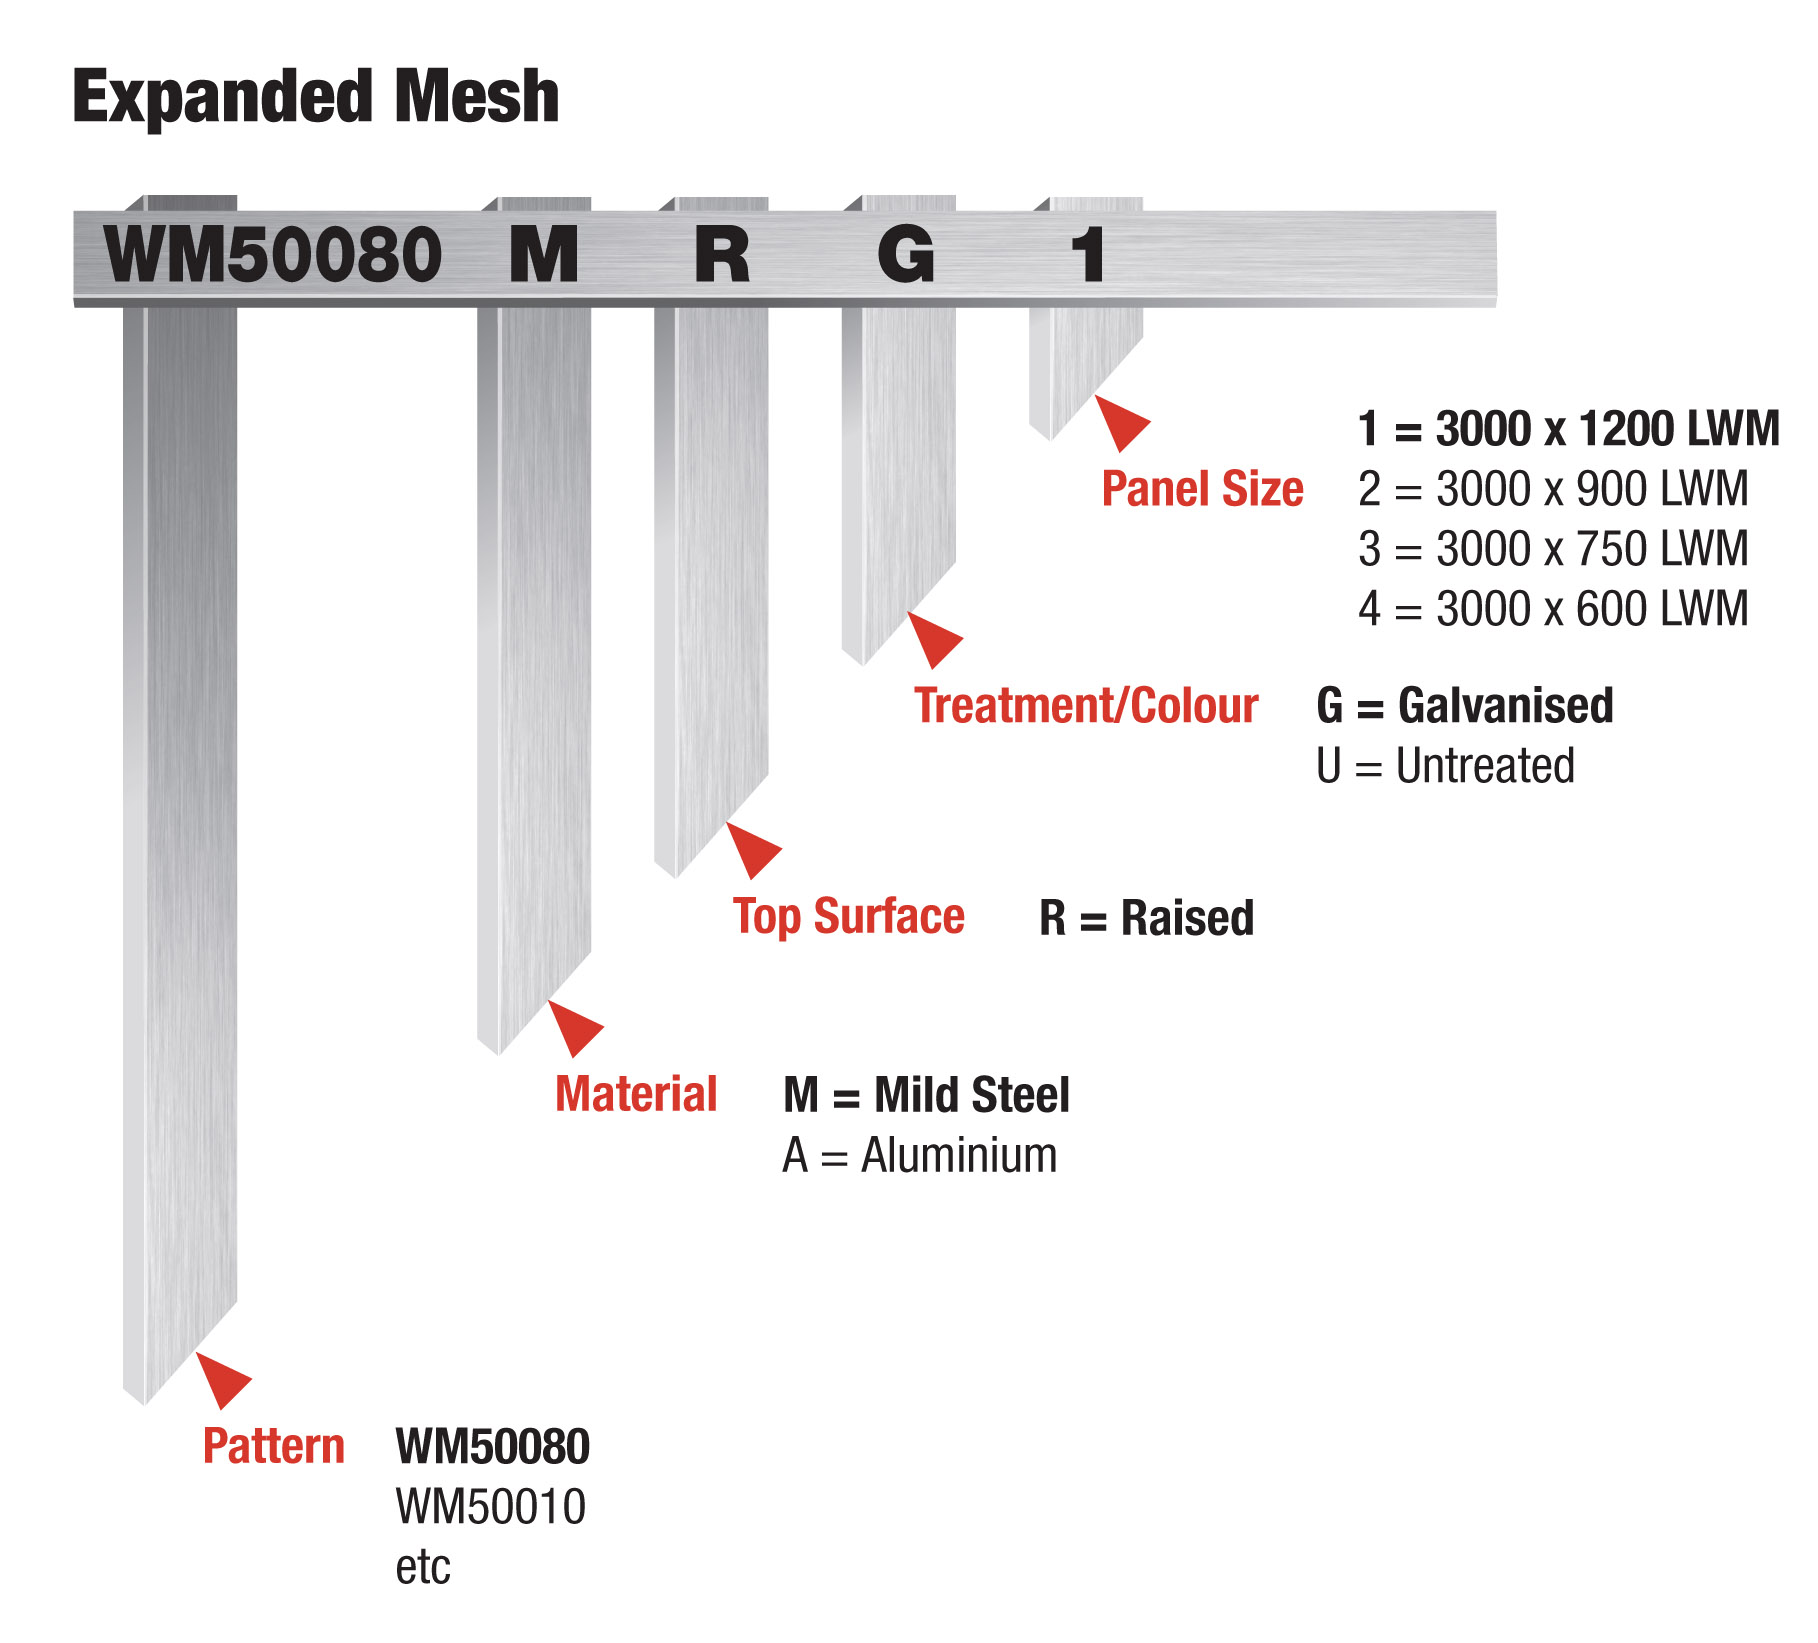 EXPANDED MESH PARTS